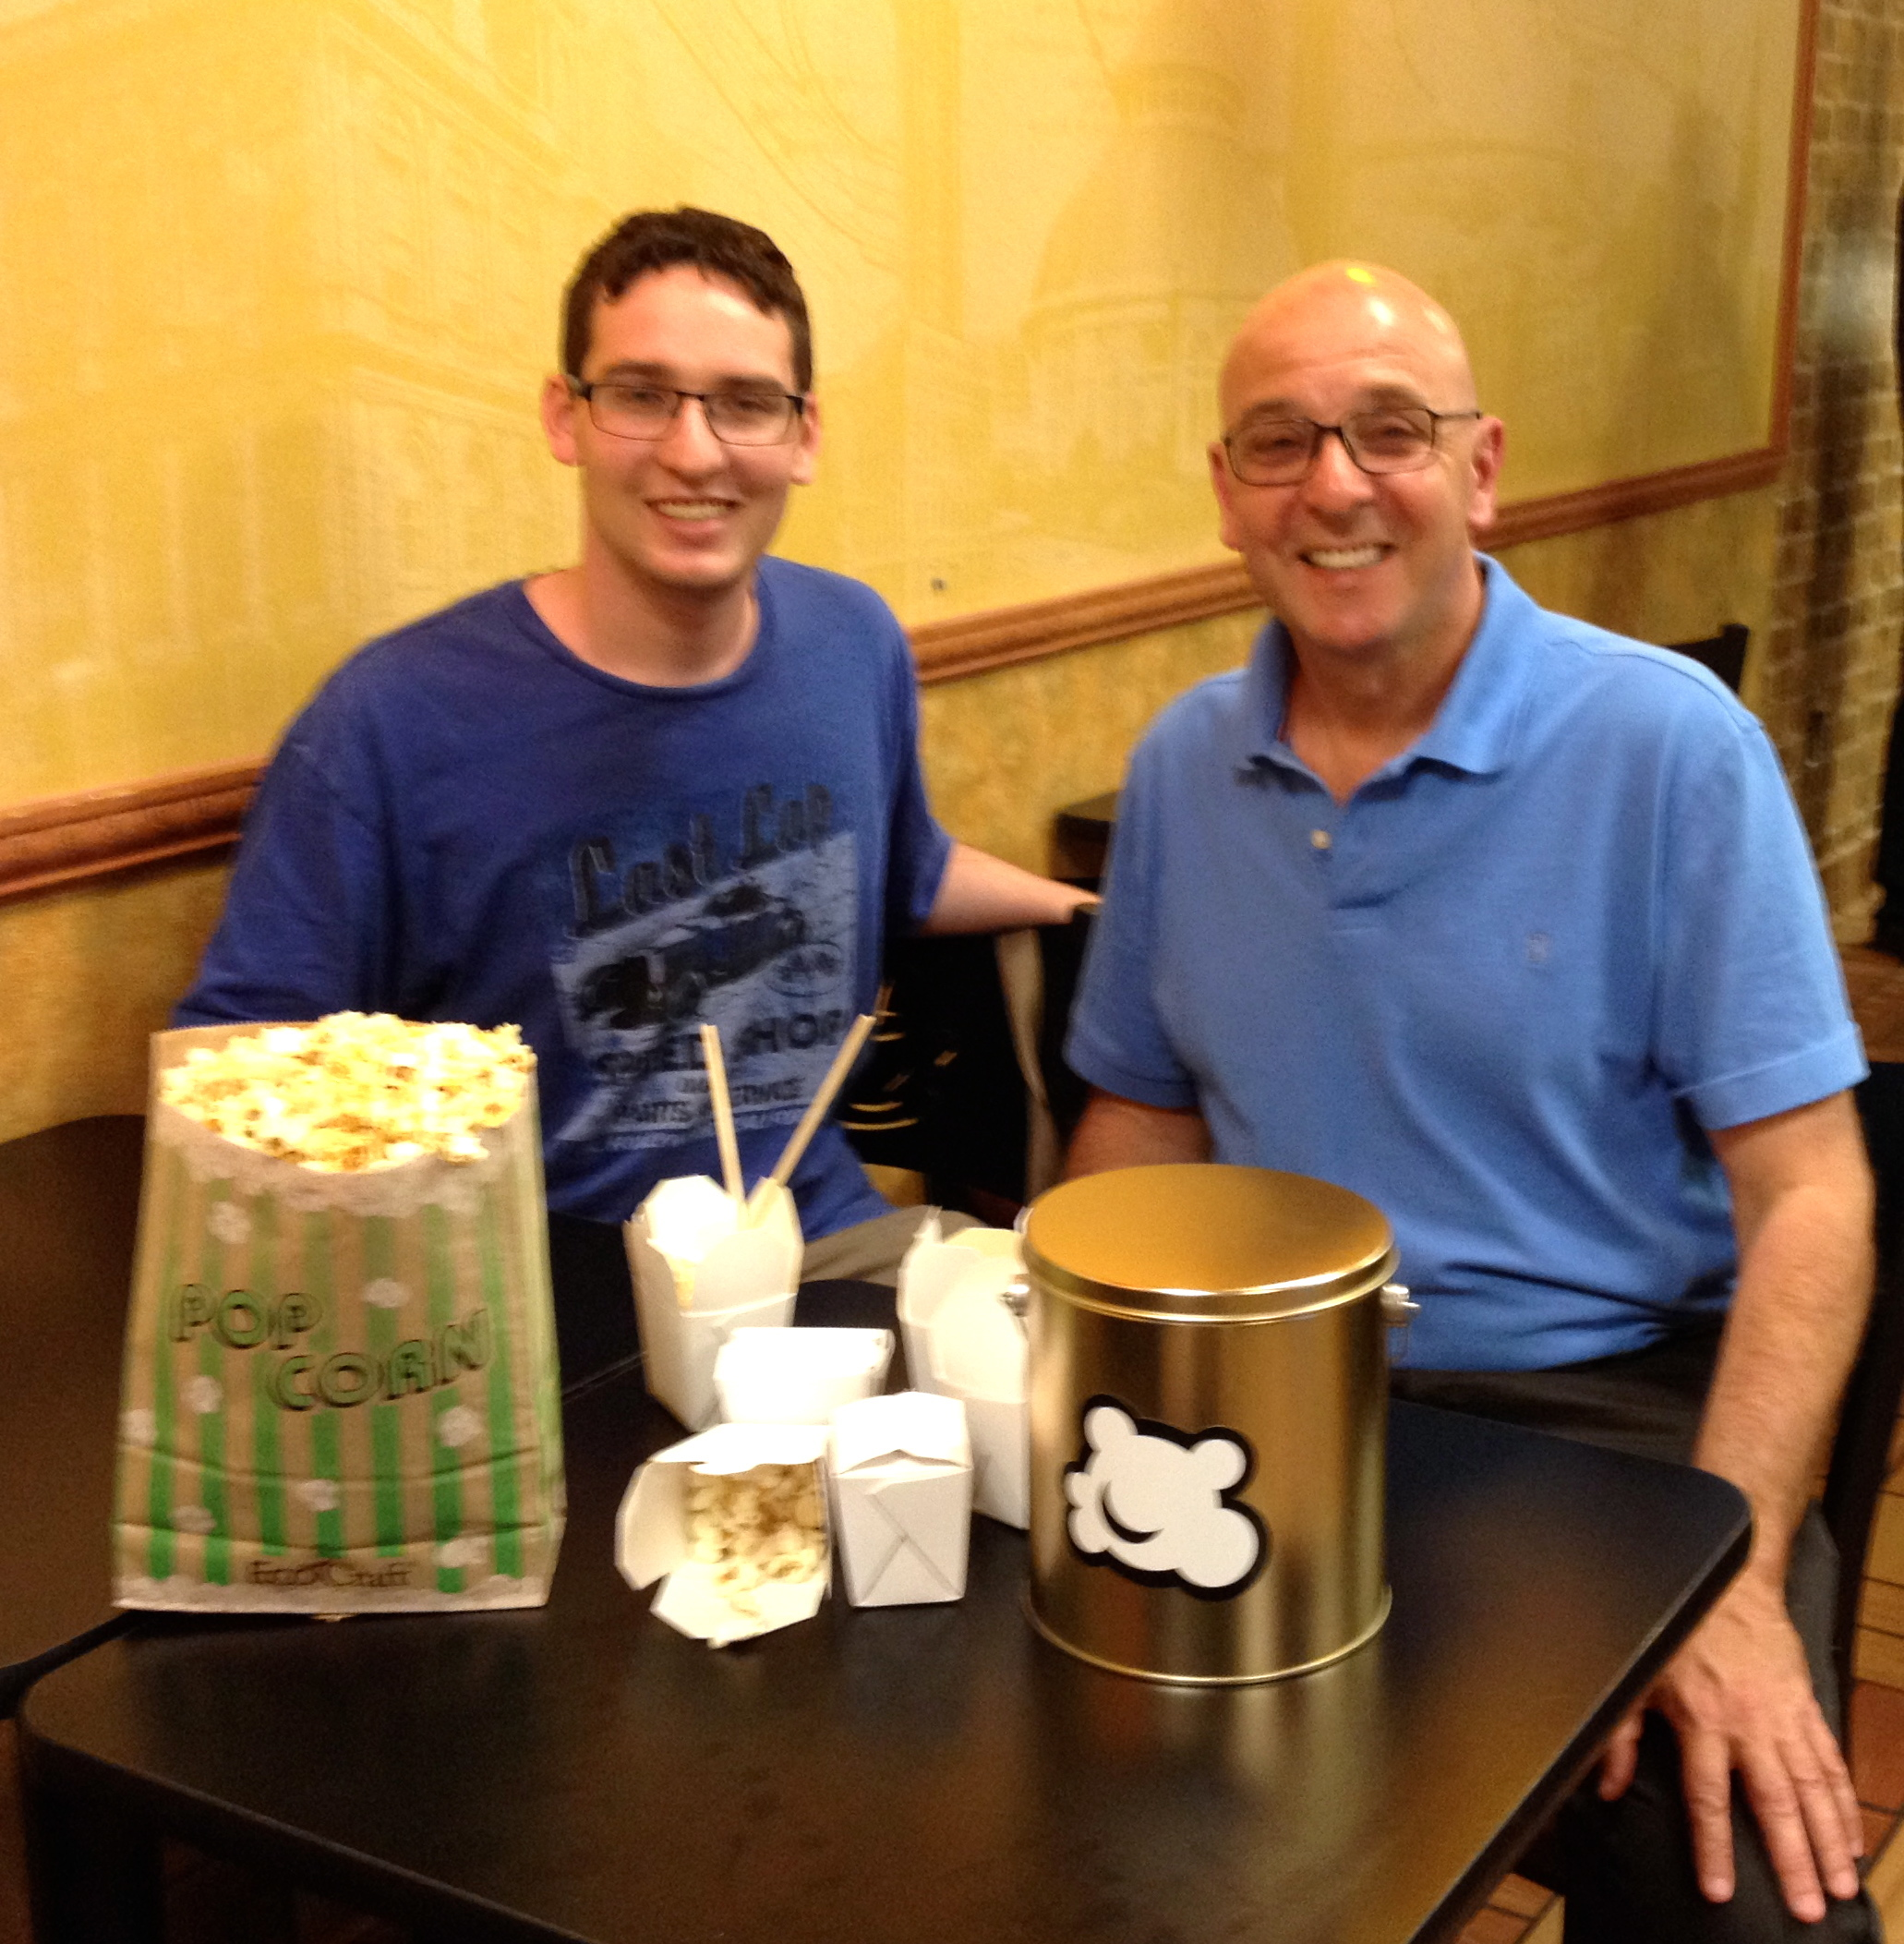 Non-Profit Pop-In Cafe Pops Up at Brunswick Square Mall